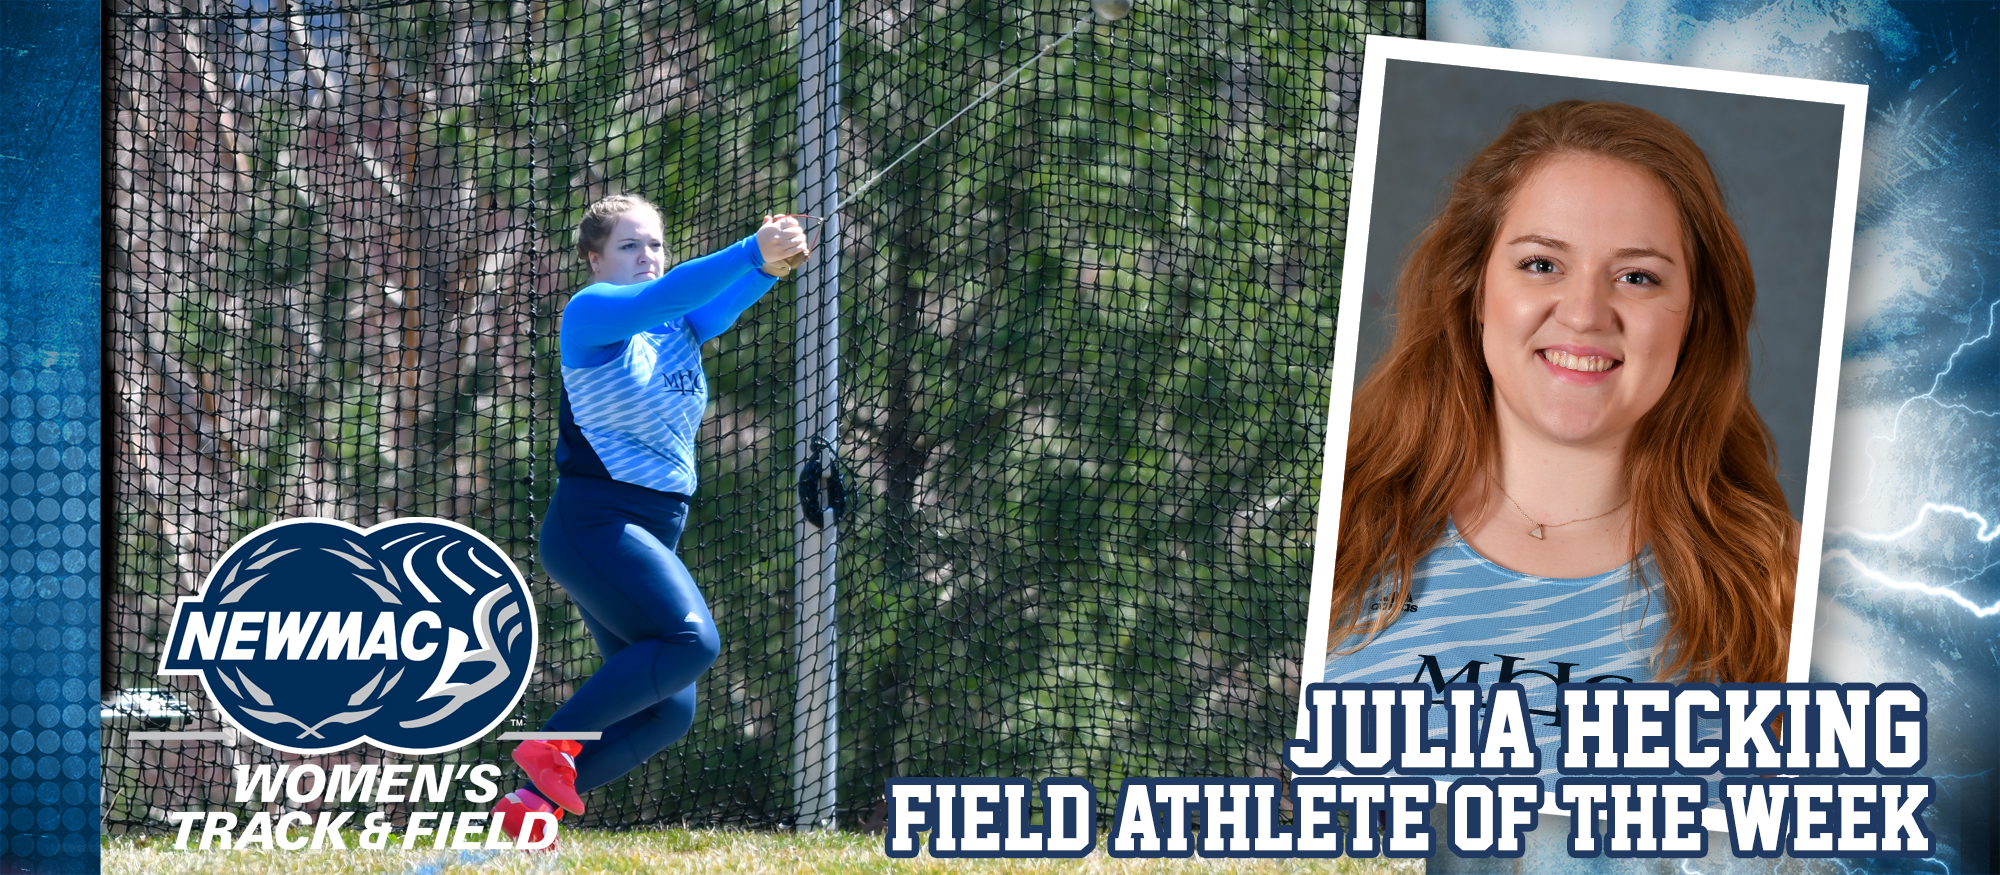 Action photo of Lyons track & field athlete, Julia Hecking, who was named the NEWMAC Women's Field Athlete of the Week for March 25, 2019.